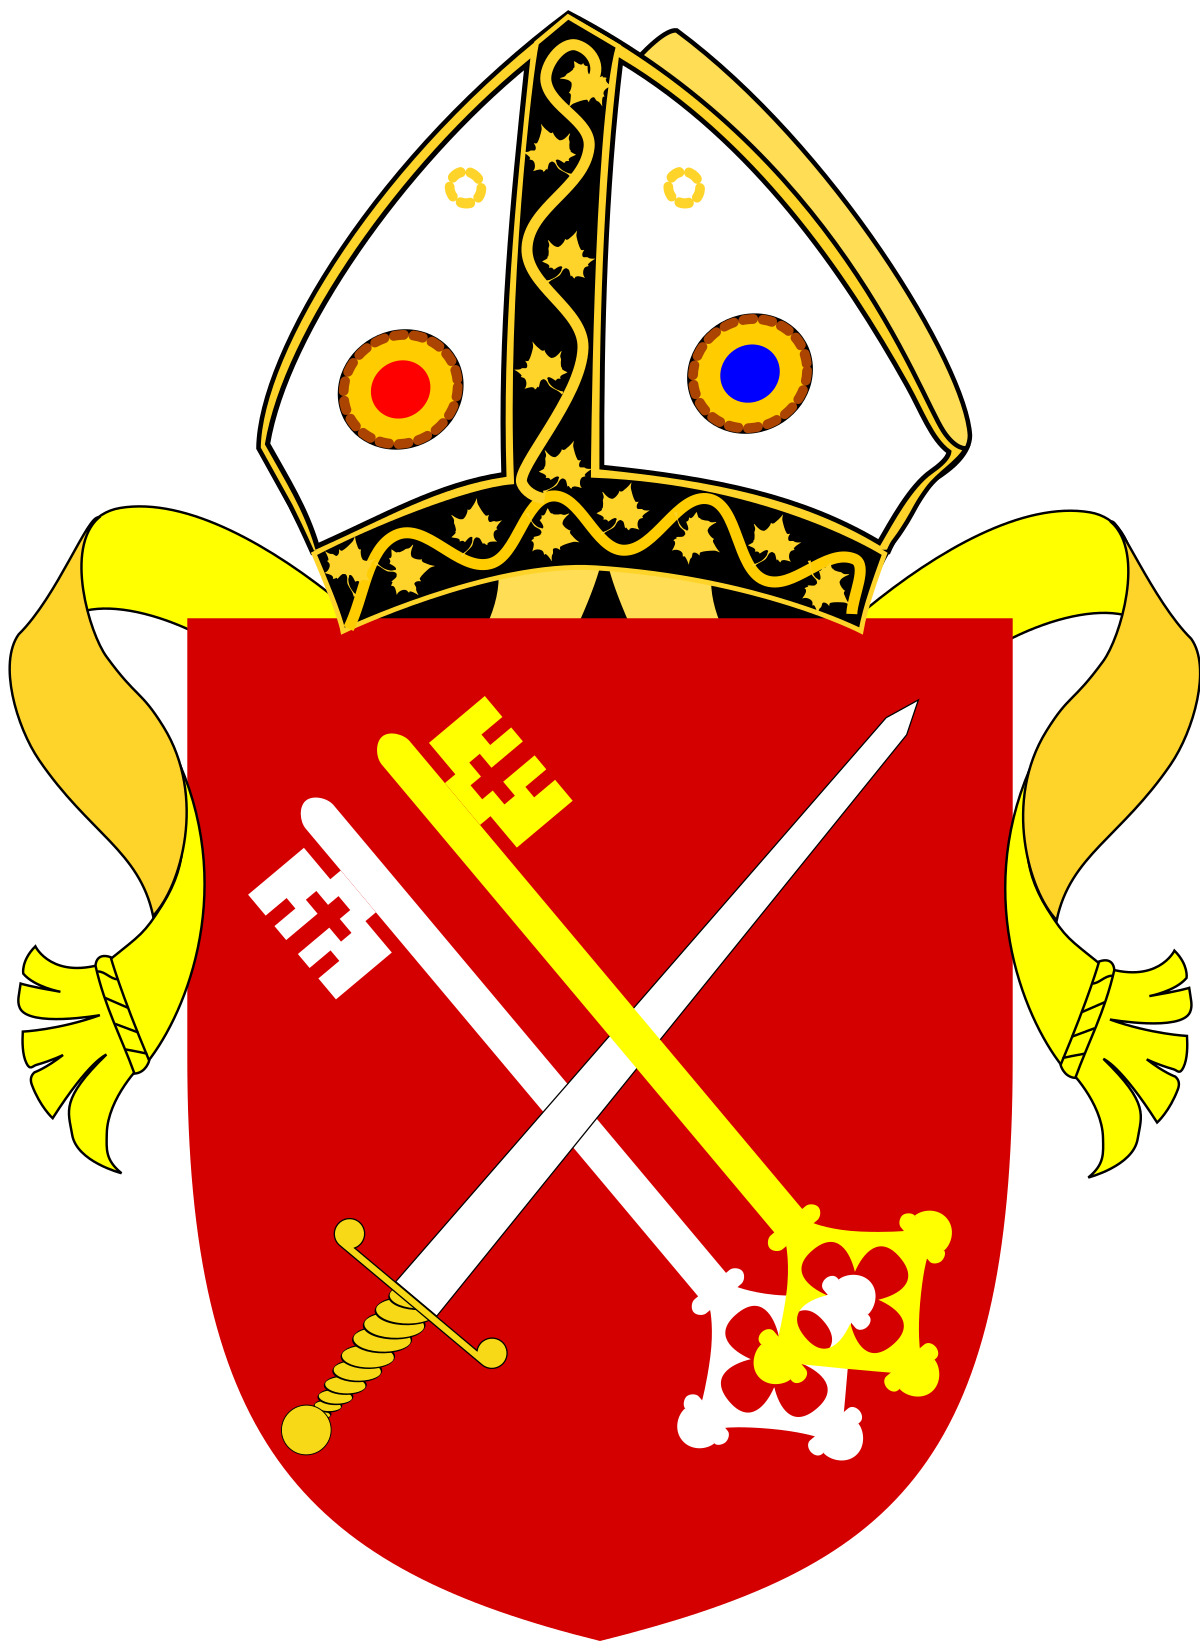 Office of the bishop of new hampshire clipart image download Diocese of Winchester - Wikipedia image download